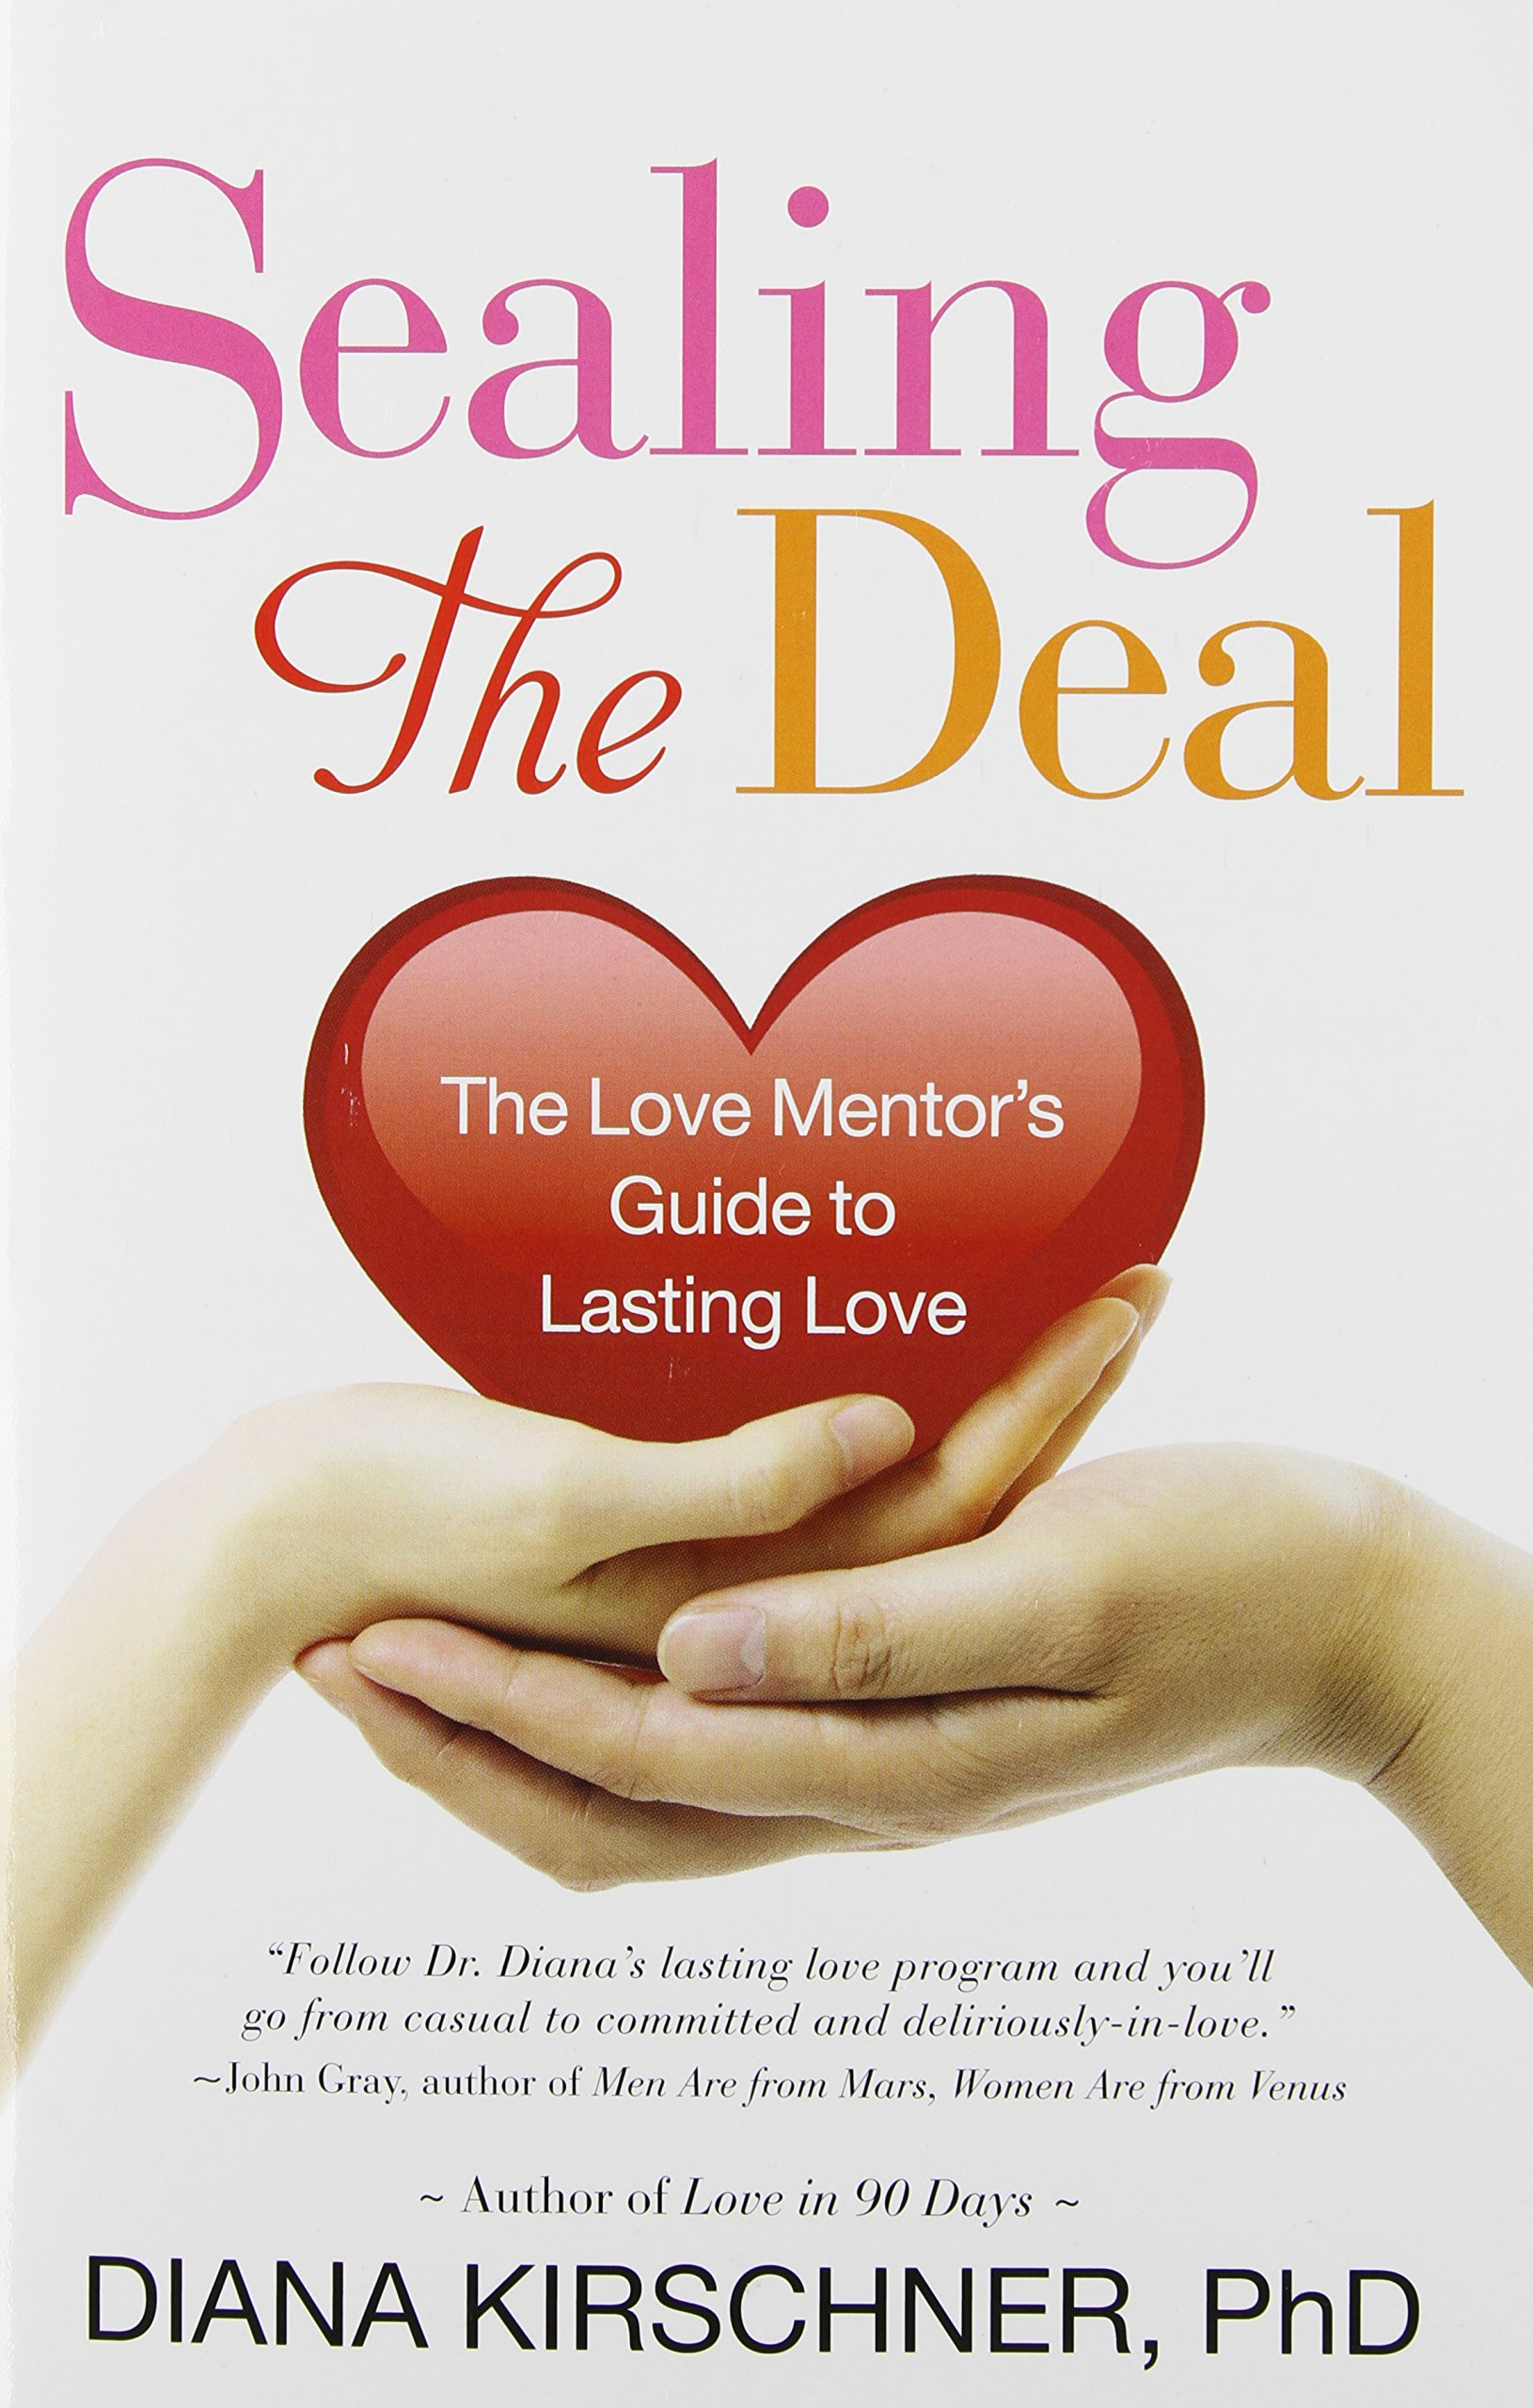 Sealing the Deal: The Love Mentor's Guide to Lasting Love: Diana Kirschner:  8601419981267: Amazon.com: Books